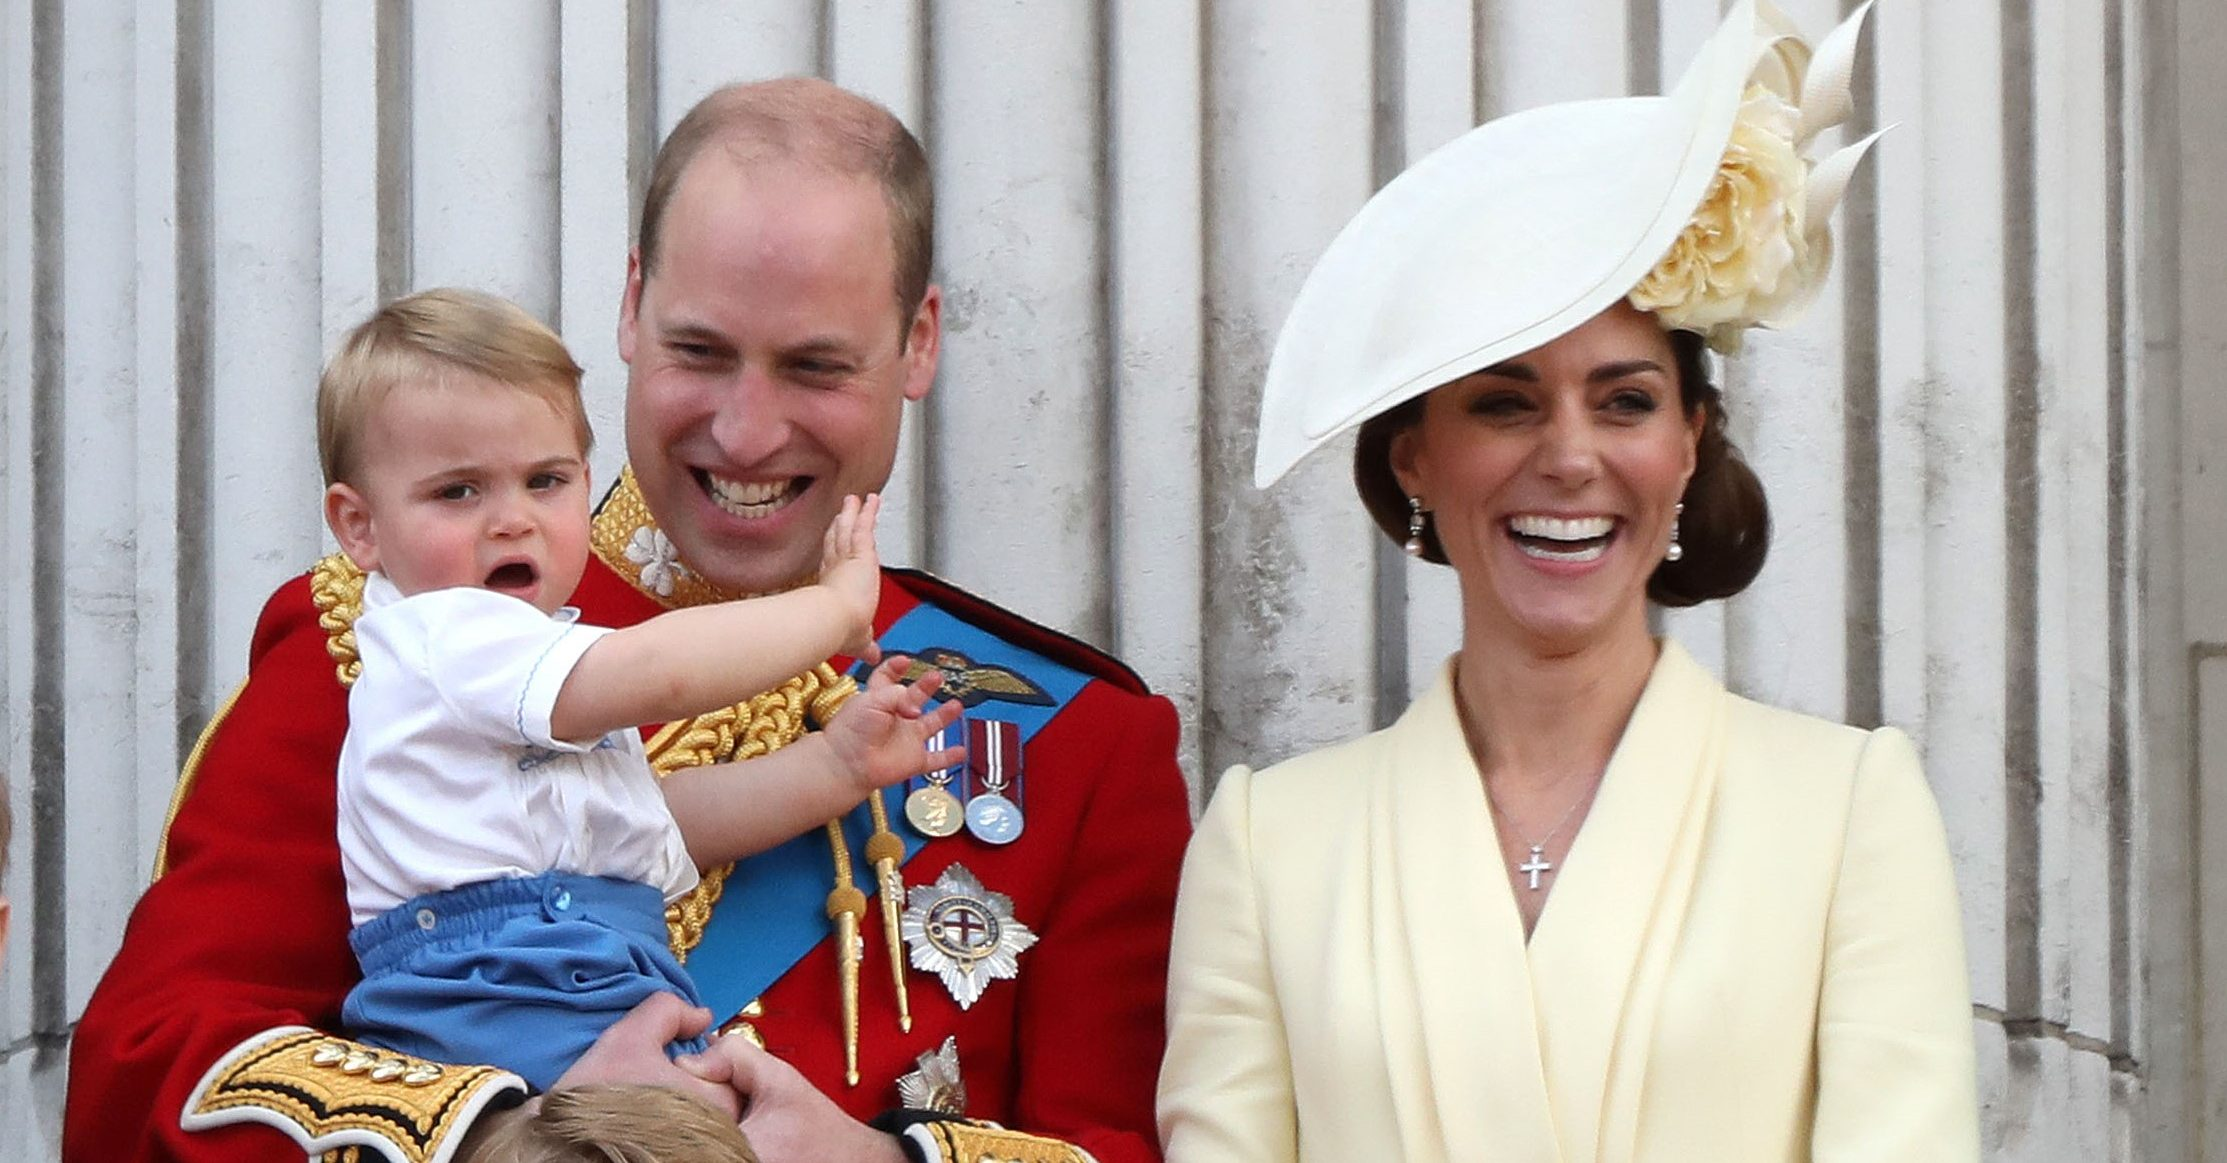 William and Kate forced to drastically change plans for Louis' birthday in lockdown